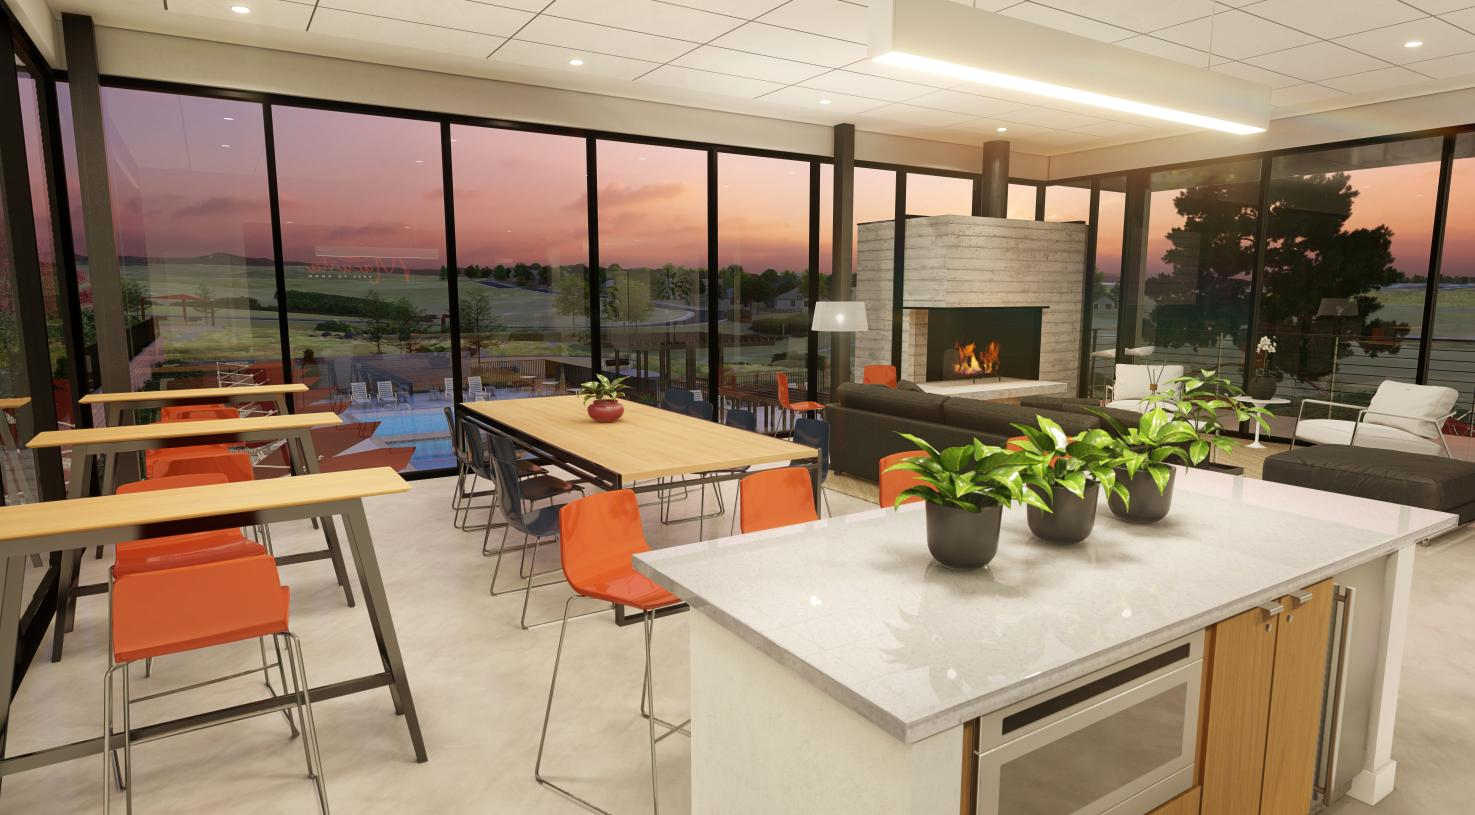 The Spoke Amenity Center lounge area with fireplace